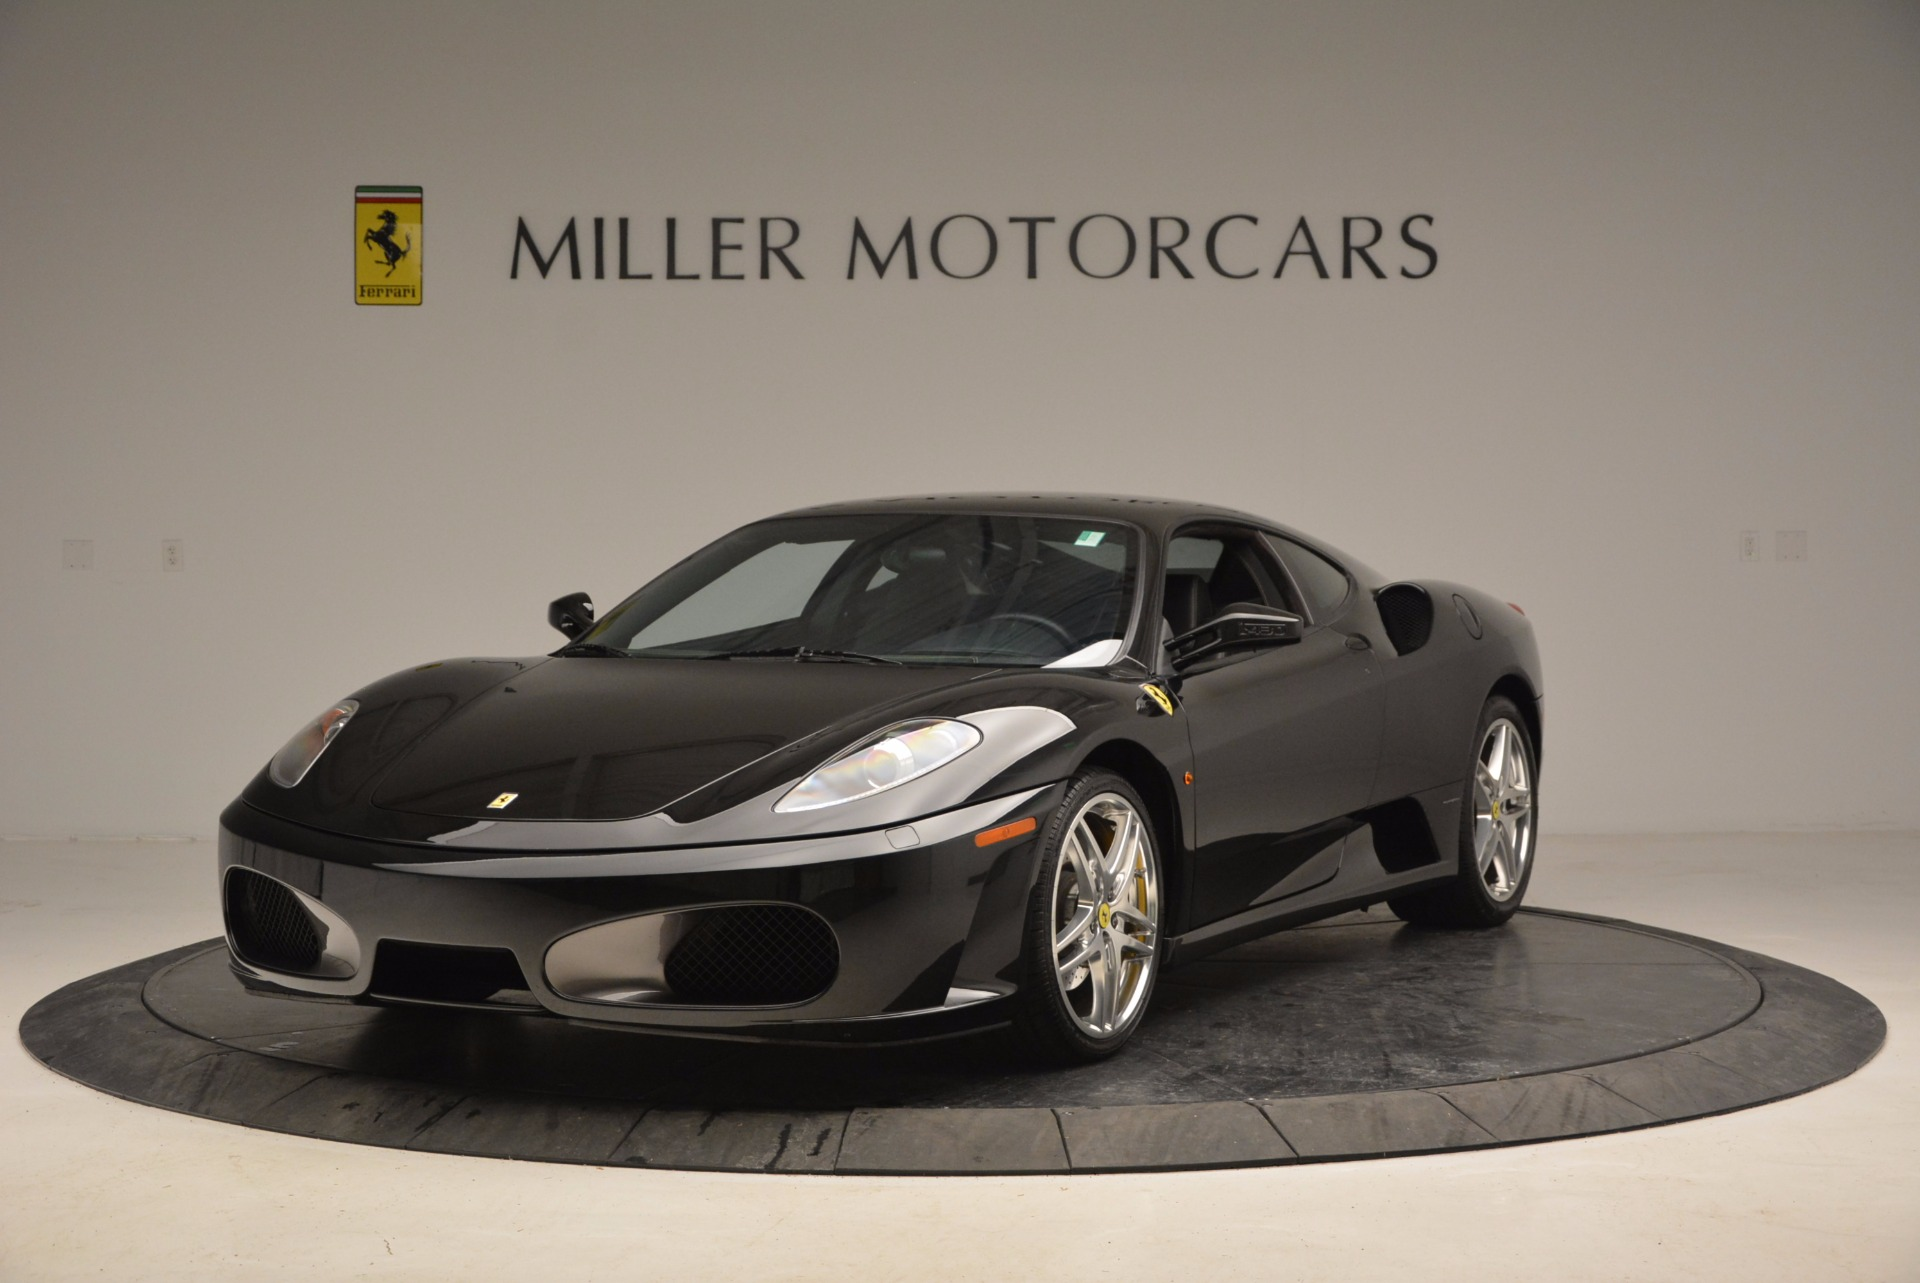 Used 2007 Ferrari F430 F1 for sale Sold at Bentley Greenwich in Greenwich CT 06830 1